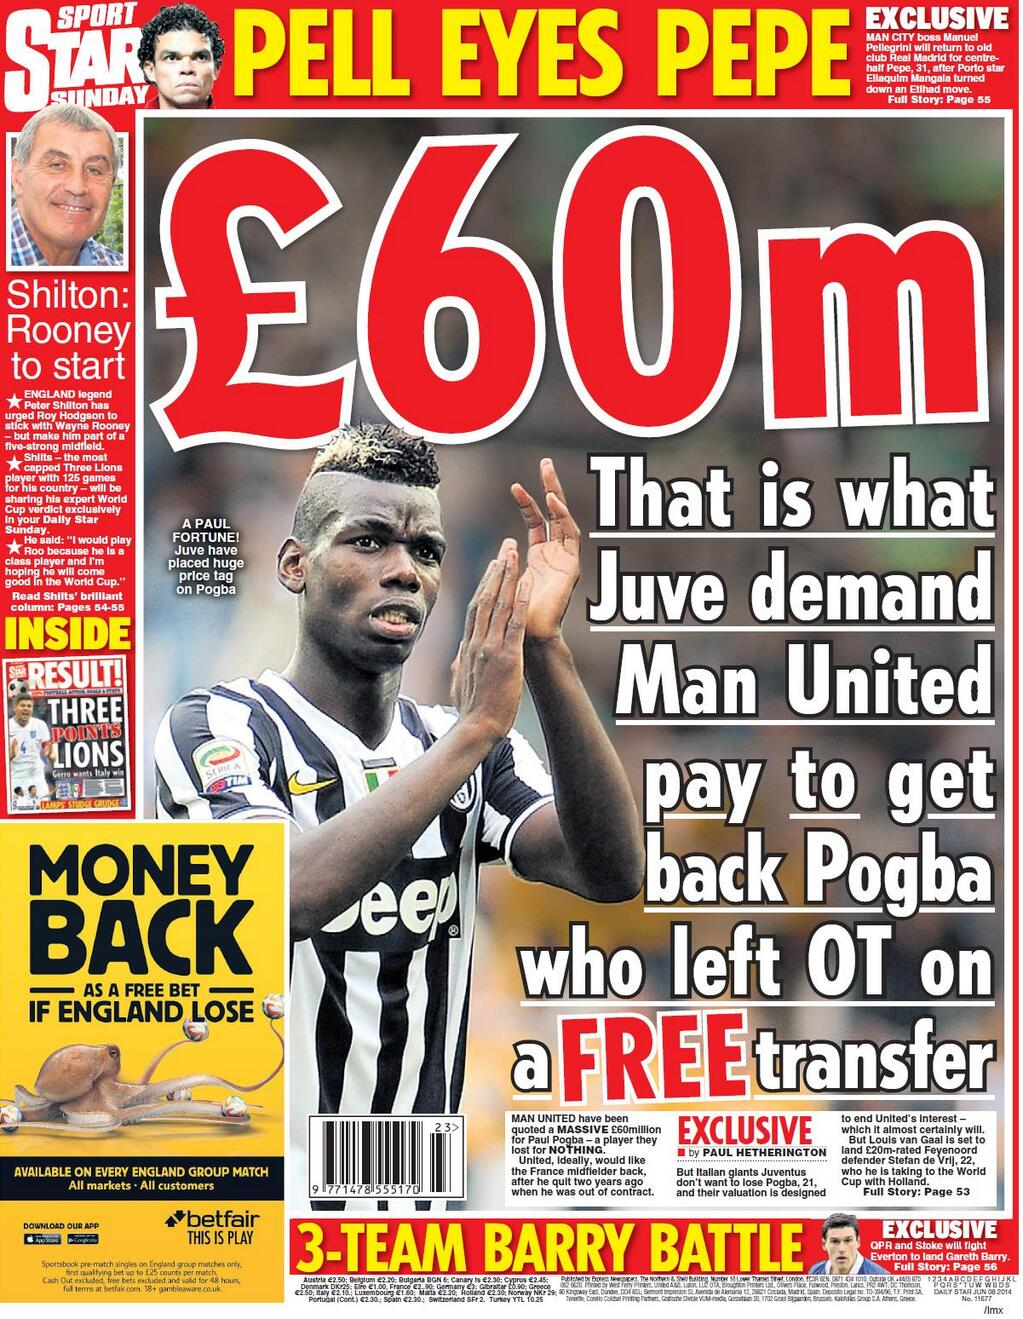 Man City target Real Madrids Pepe after Eliaquim Mangala rejects move [Star on Sunday]